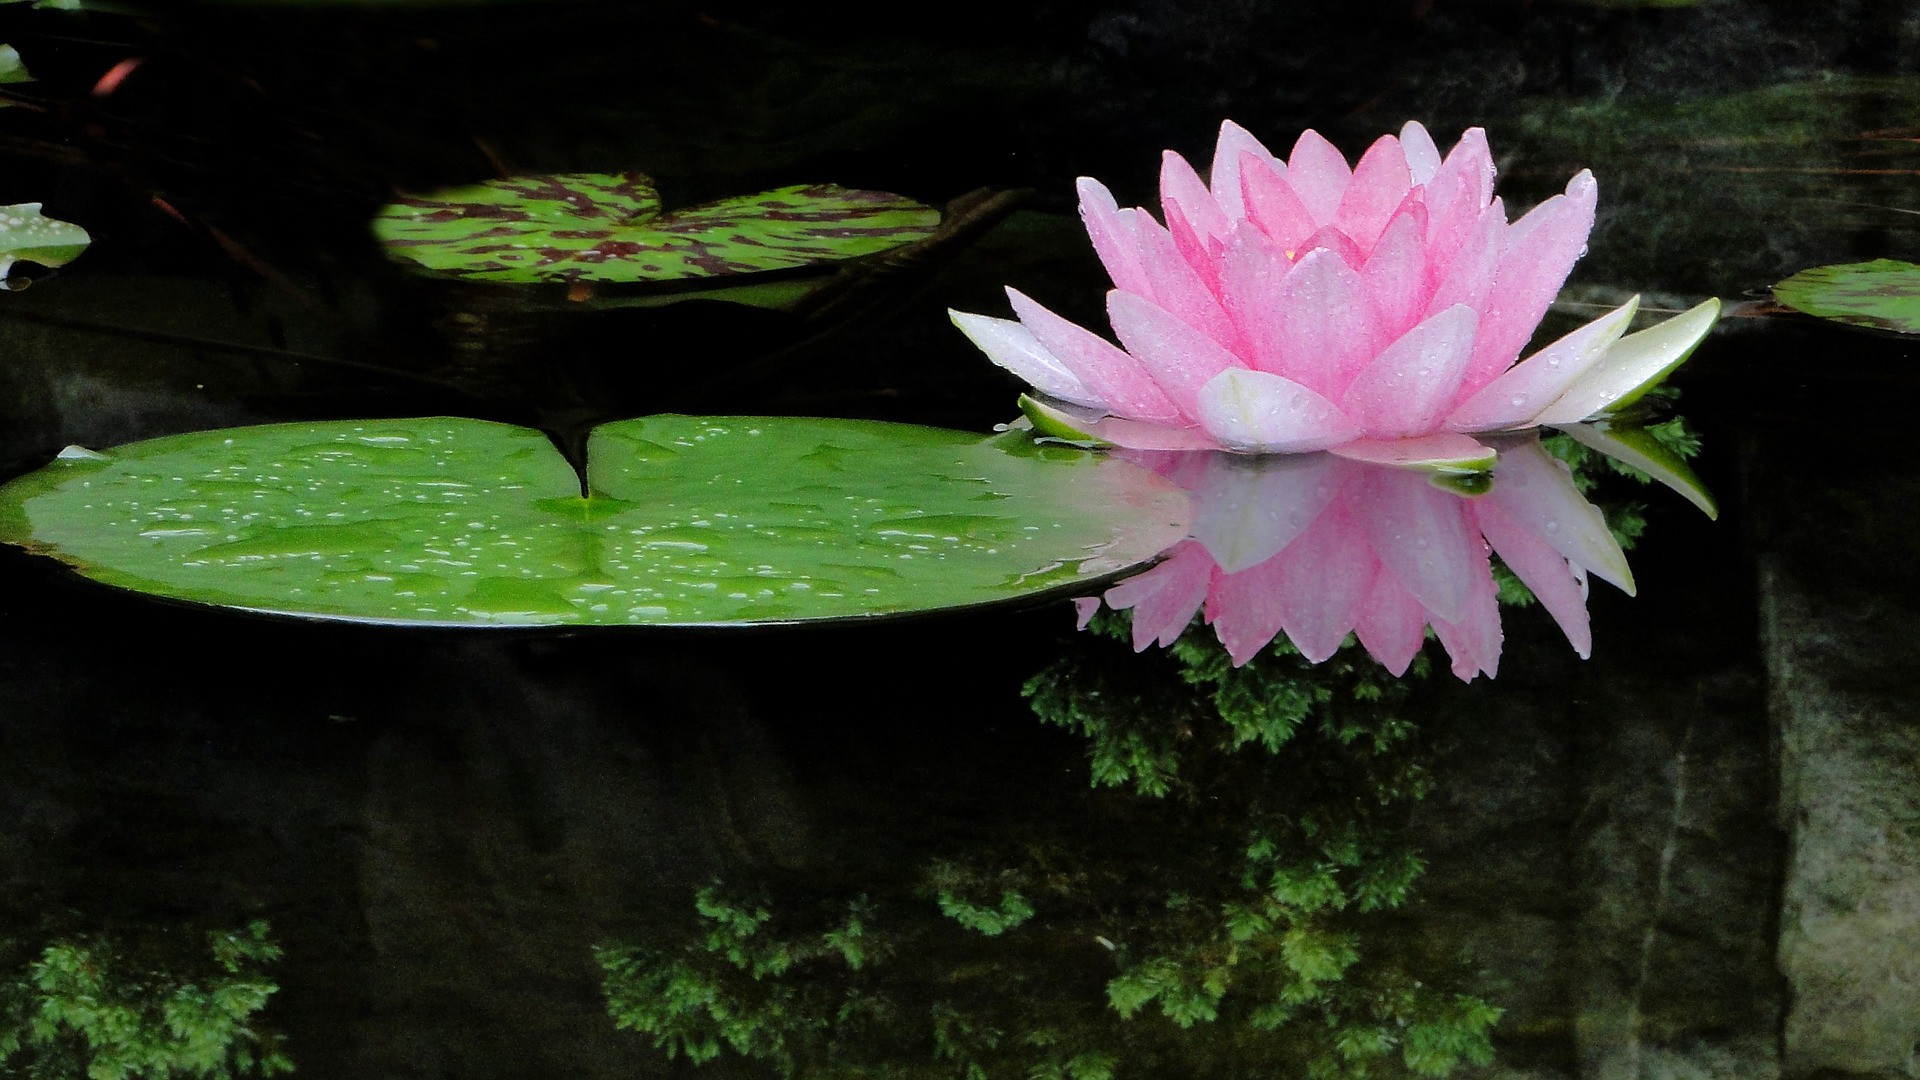 The awakening ps i love you like a dew drop falling upon a lotus bud i am awakened to my souls deepest desires of love and freedom izmirmasajfo